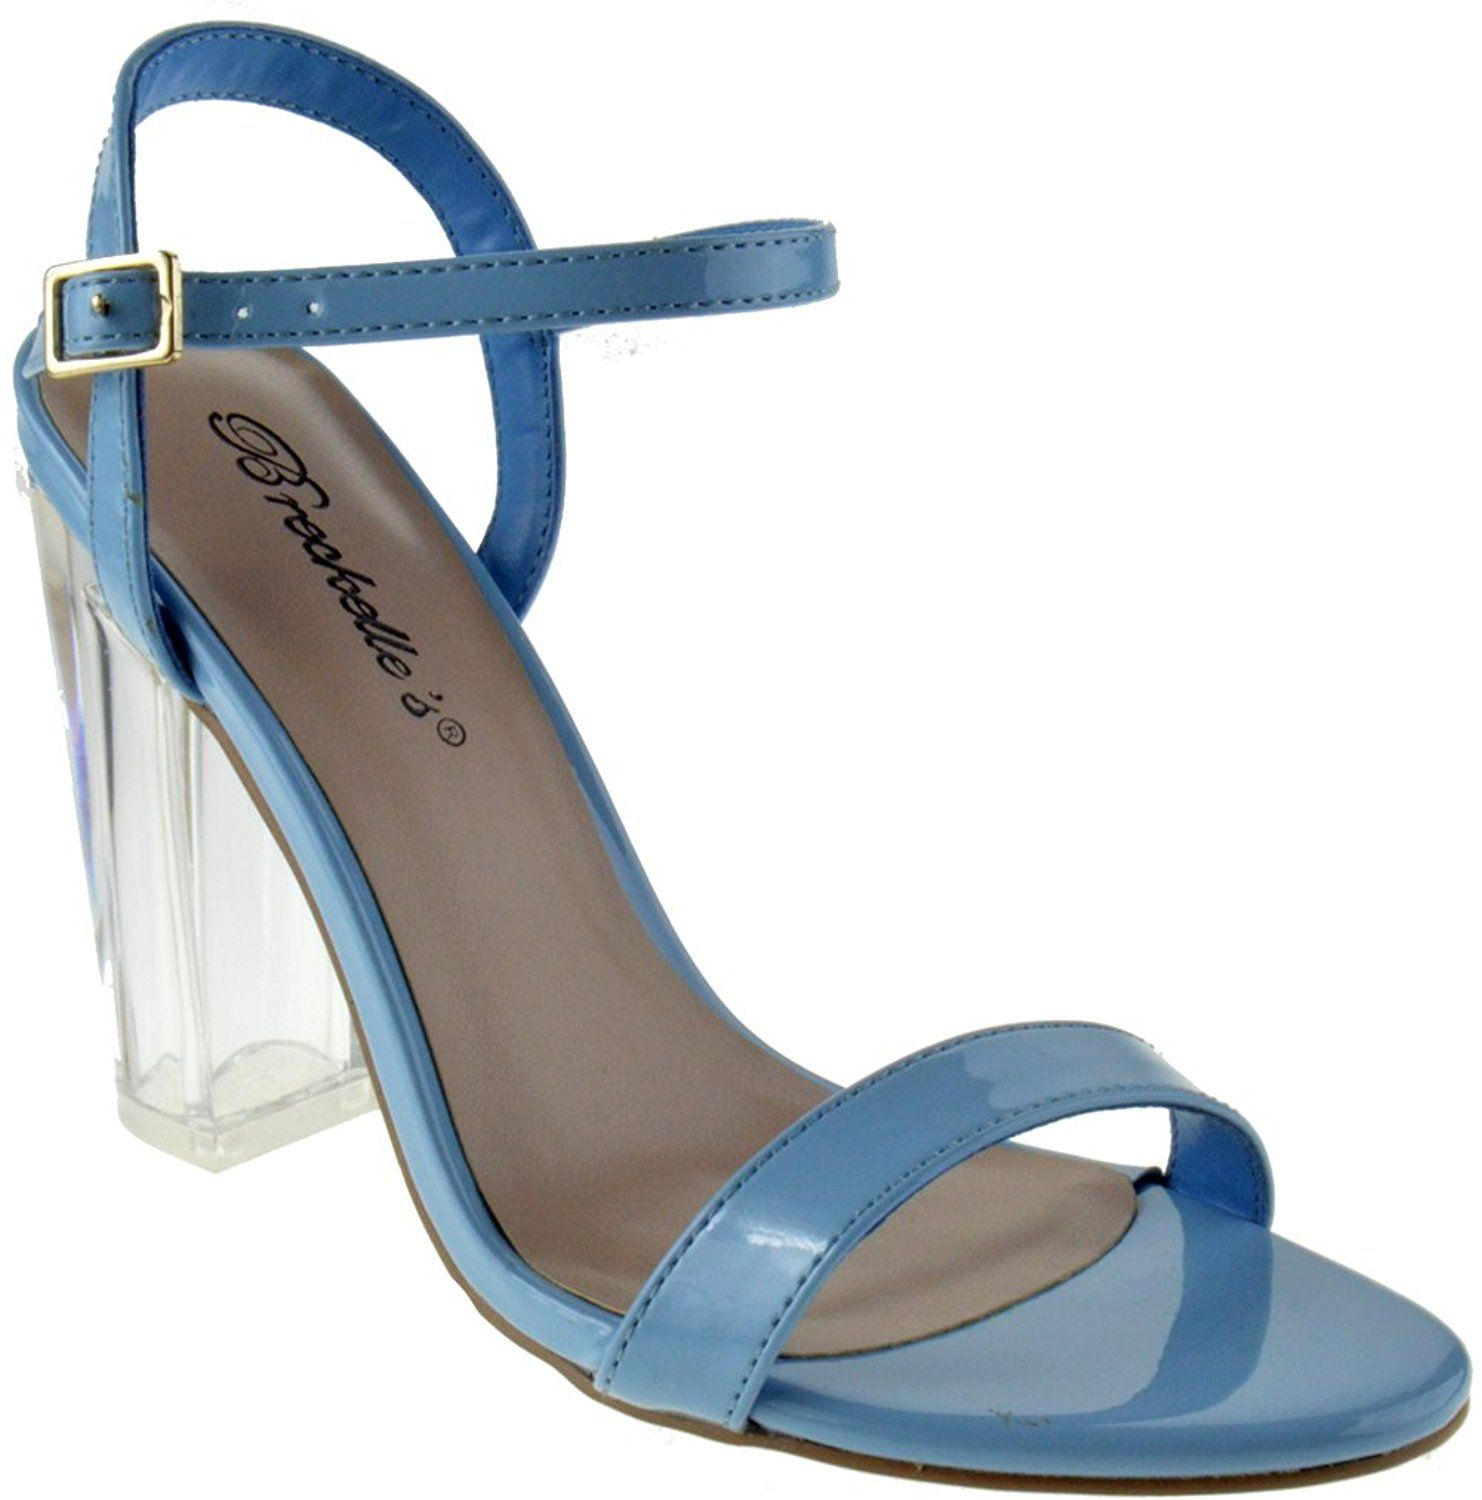 049a77530 Breckelle s Emmie 15 Womens Clear Chunky Heel Patent Buckle Platform Sandals  -- Click image to